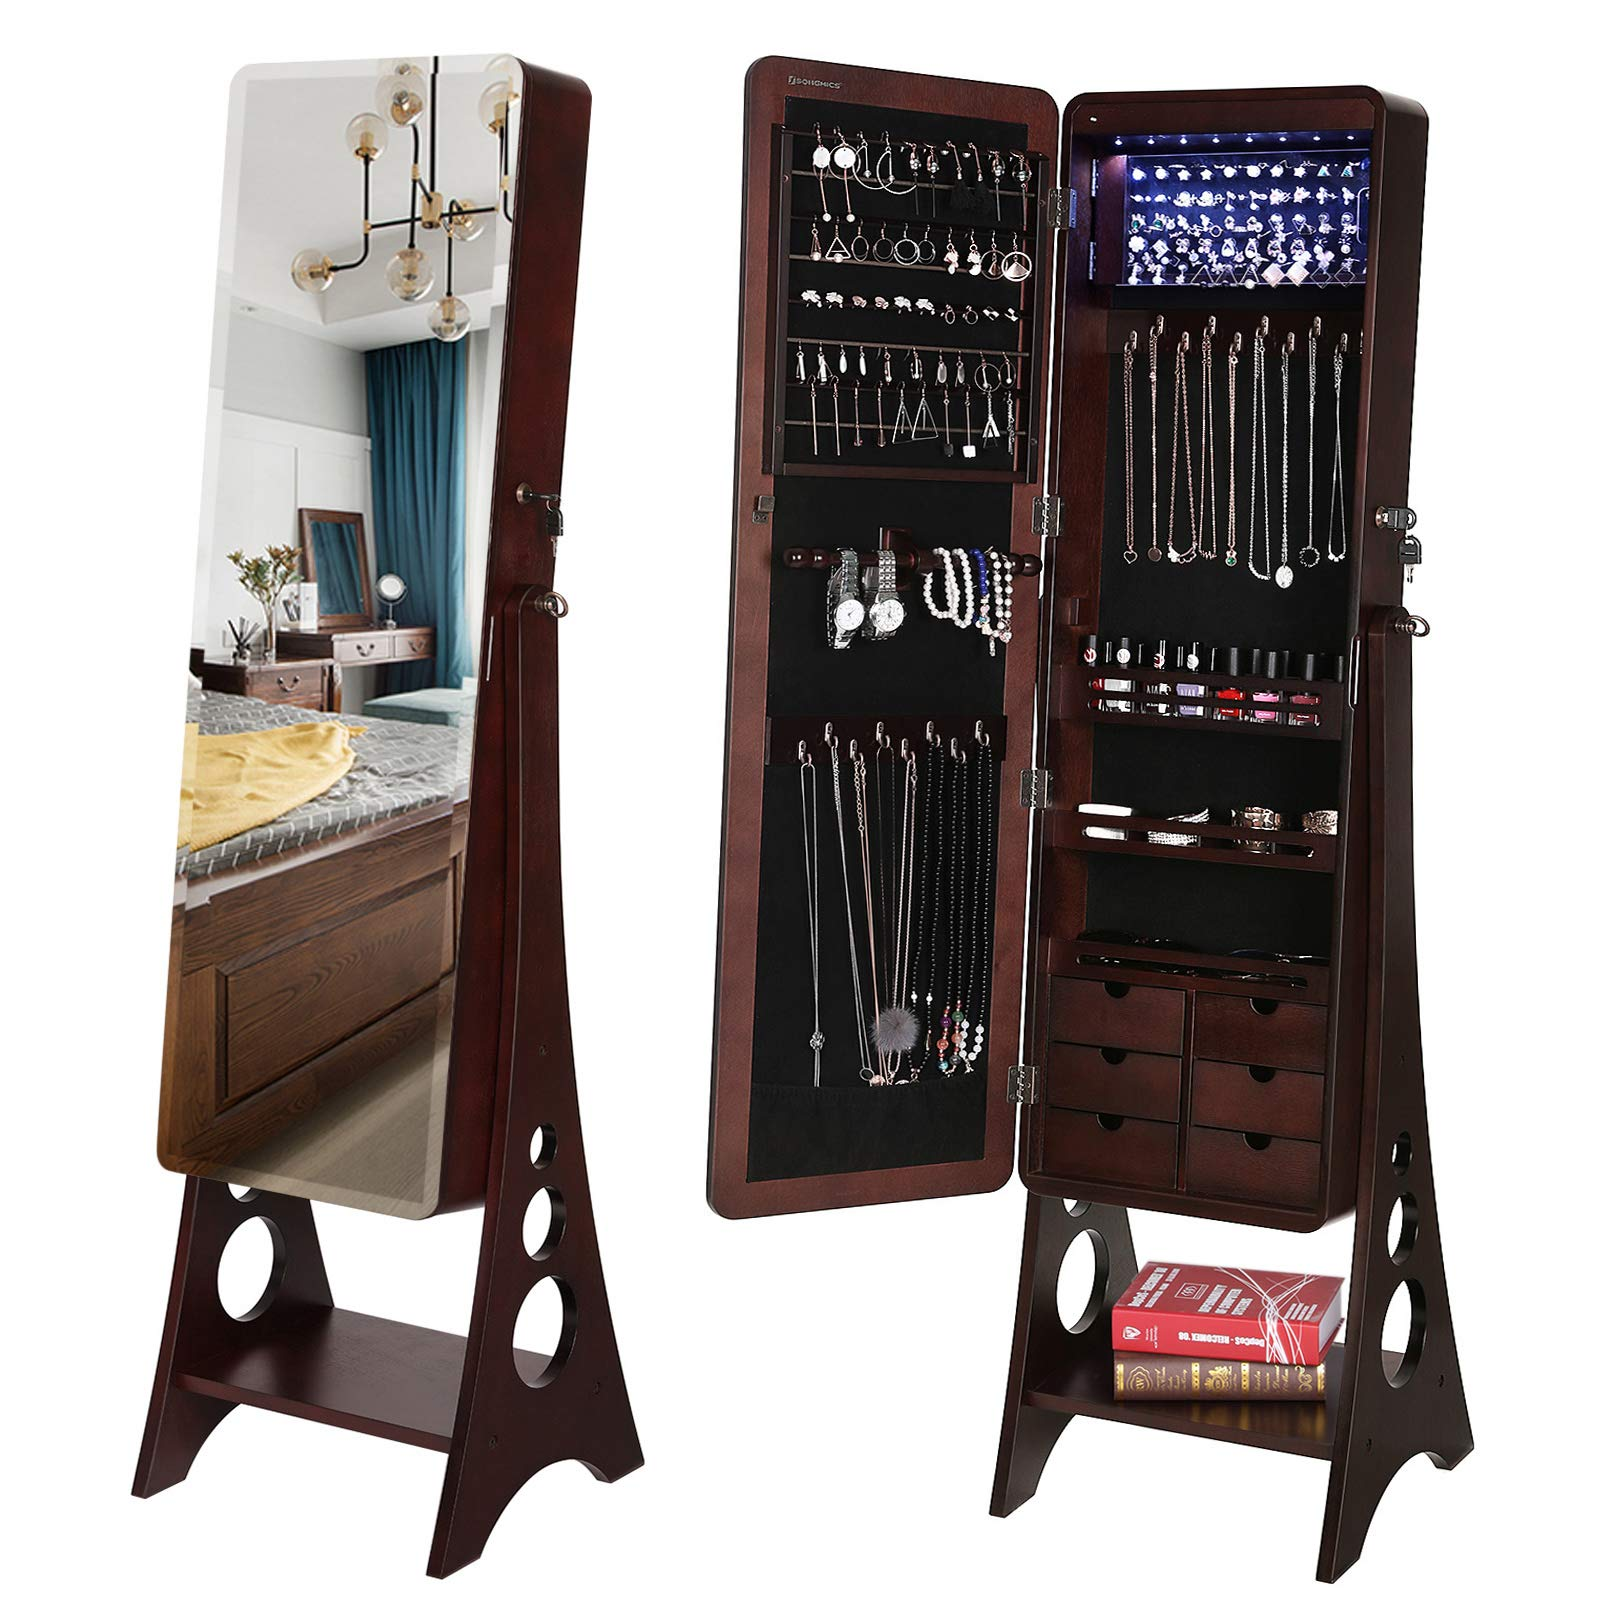 SONGMICS 8 LEDs Jewelry Cabinet Armoire with Beveled Edge Mirror, Gorgeous Jewelry Organizer Large Capacity Brown Patented UJJC89K by SONGMICS